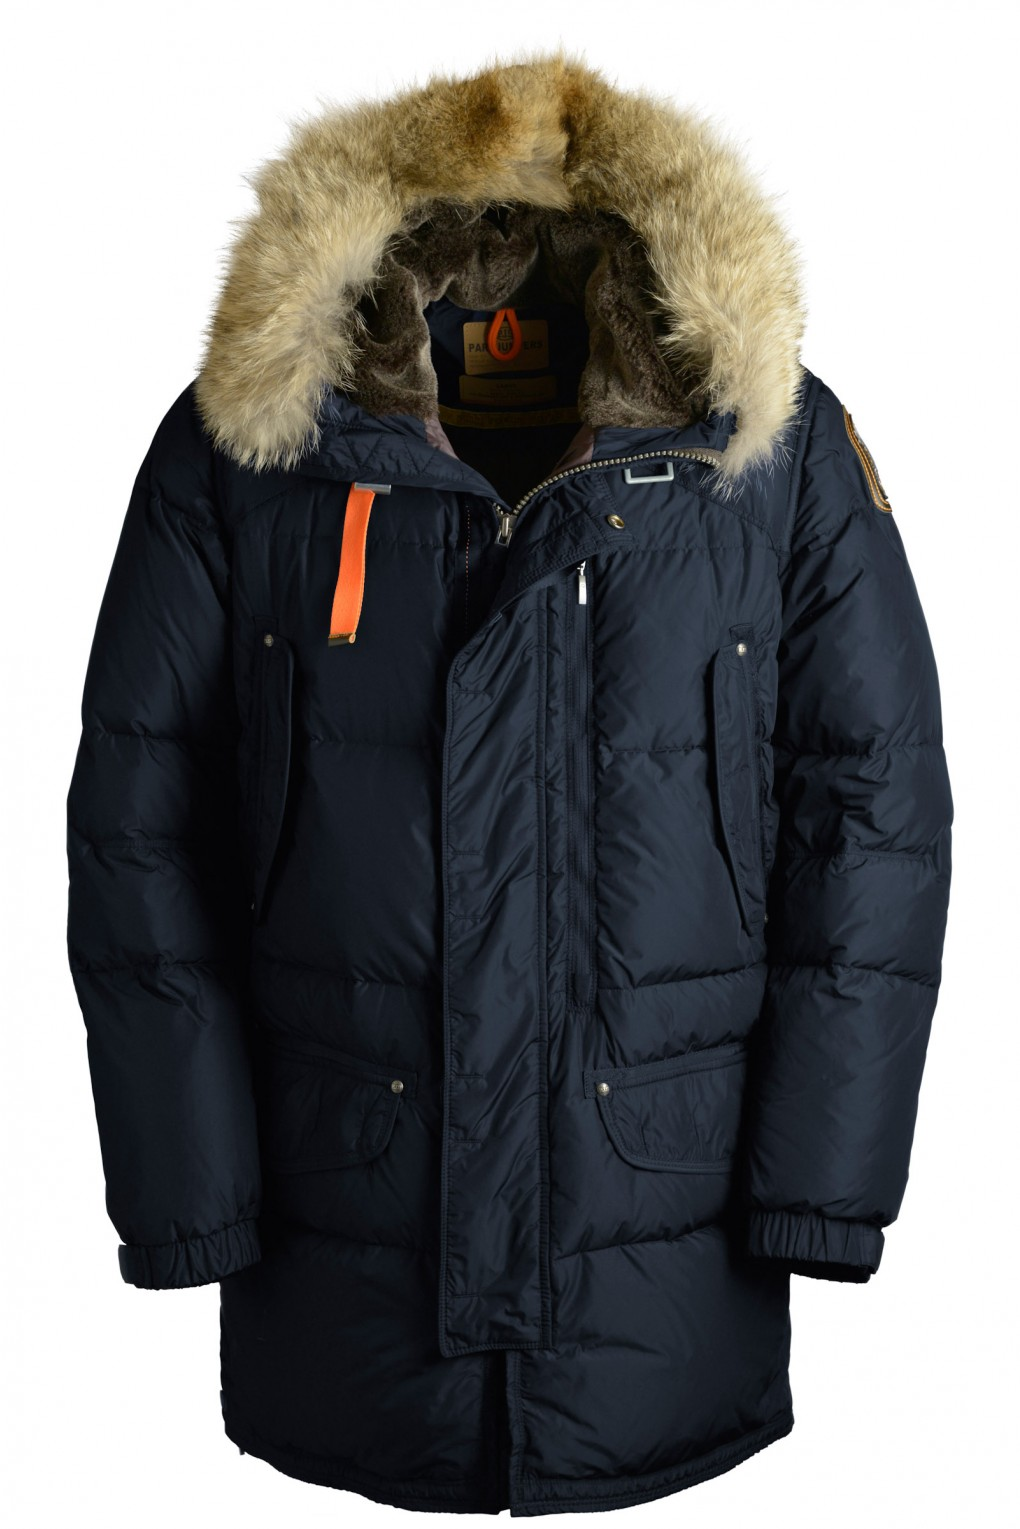 parajumpers HARRASEEKET man outerwear Navy